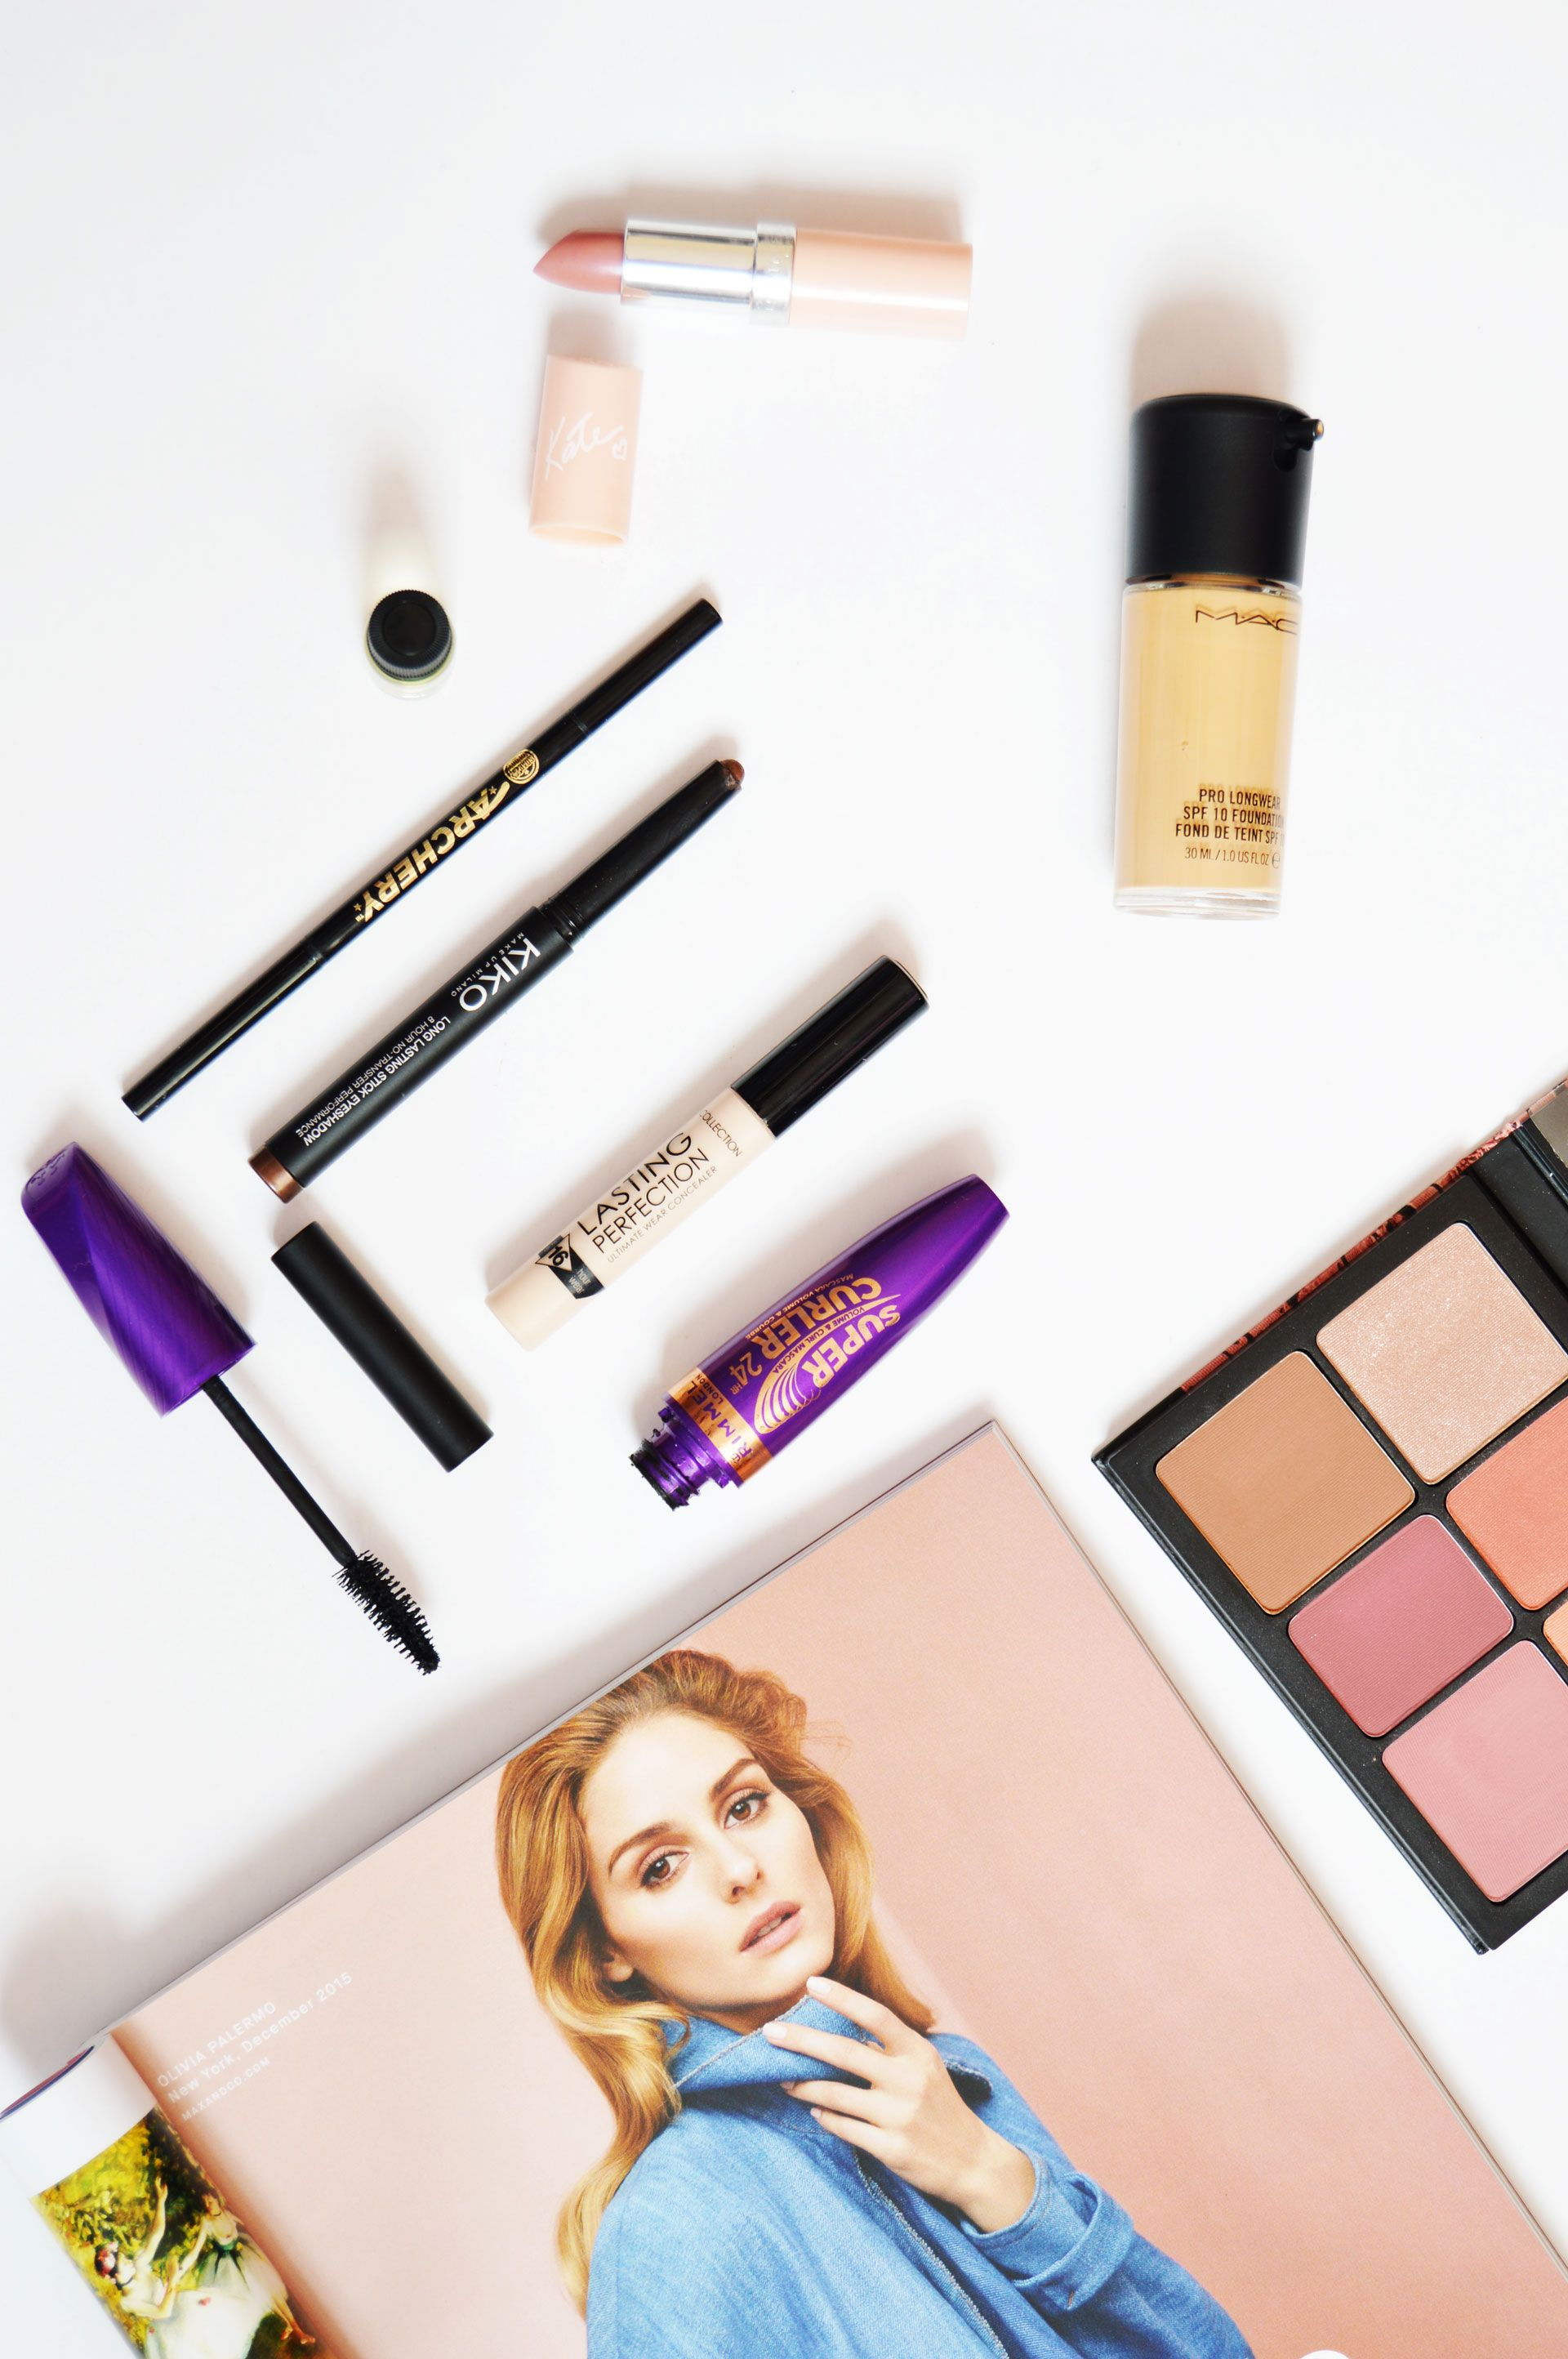 Everyday Nude Makeup Look | Flawless base with minimal eye makeup and contoured cheekbones, nude makeup looks better when face features are all defined. Click through to check out how to achieve everyday nude makeup look.